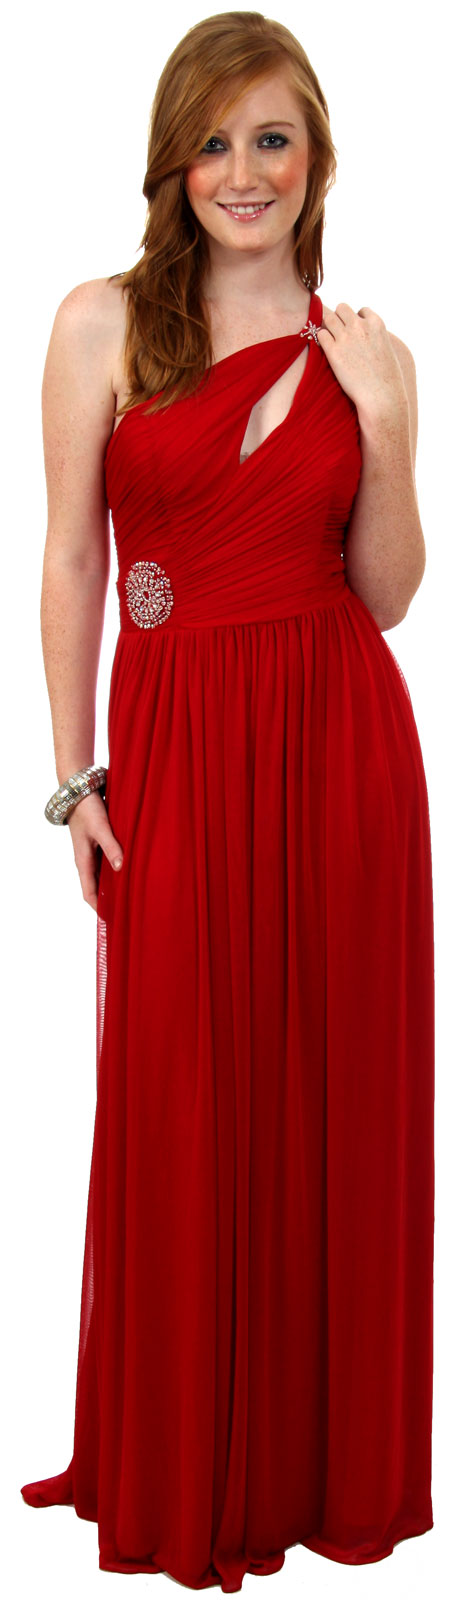 Single Shoulder Shirred Brooch Formal Prom Dress